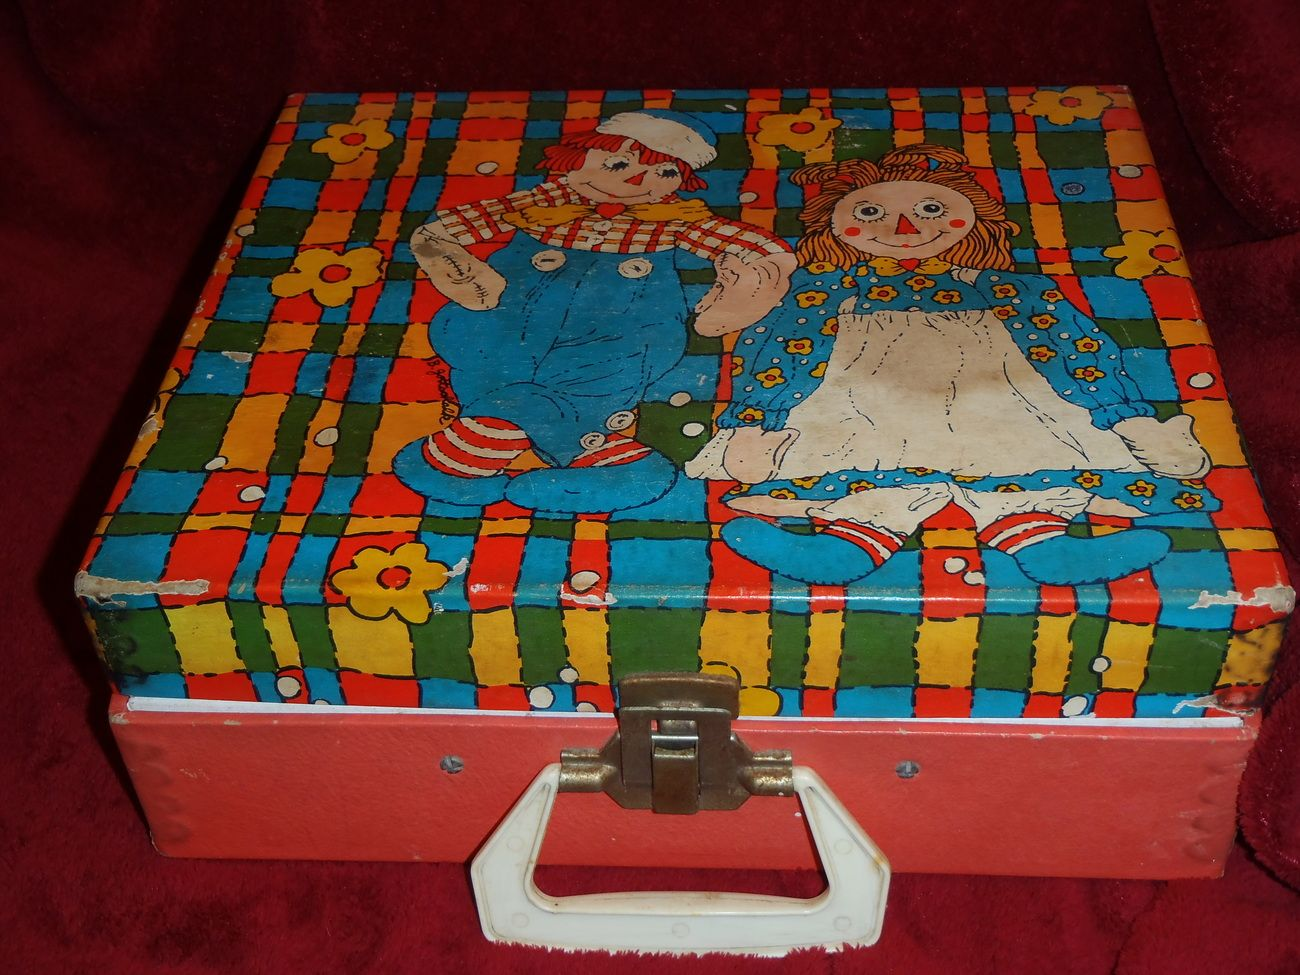 raggedy ann and andy record player turntable exact one i had